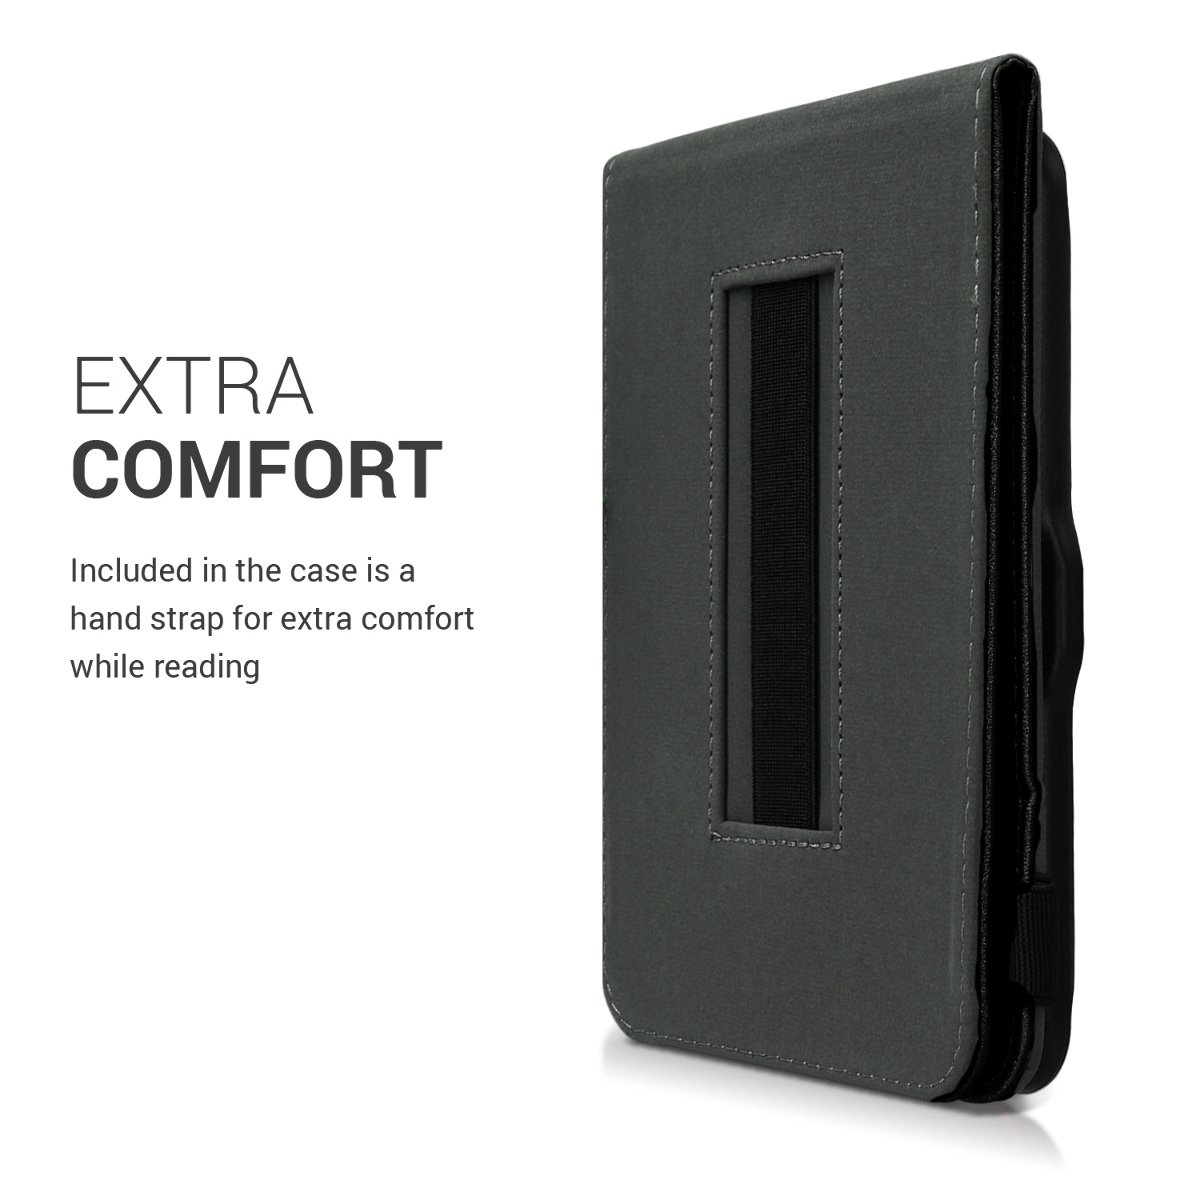 kwmobile Cover for Tolino Vision 1/2 / 3/4 HD - Case with Built-in Hand Strap and Stand in Black by kwmobile (Image #4)